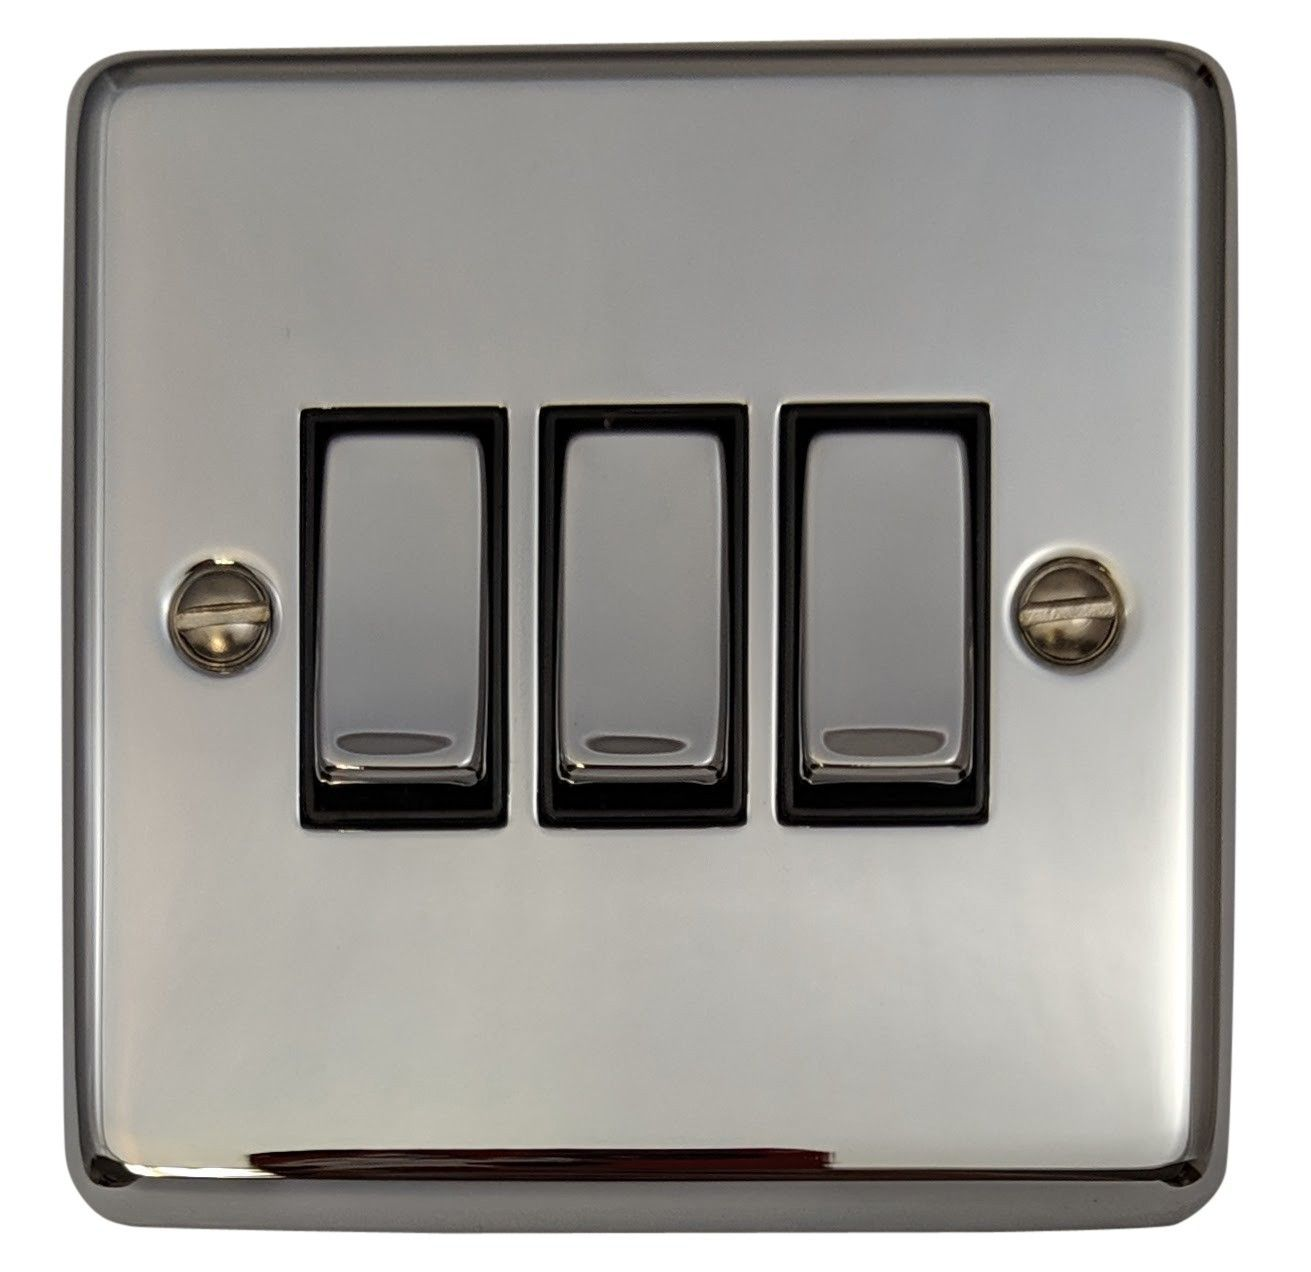 G&H CC303 Standard Plate Polished Chrome 3 Gang 1 or 2 Way Rocker Light Switch